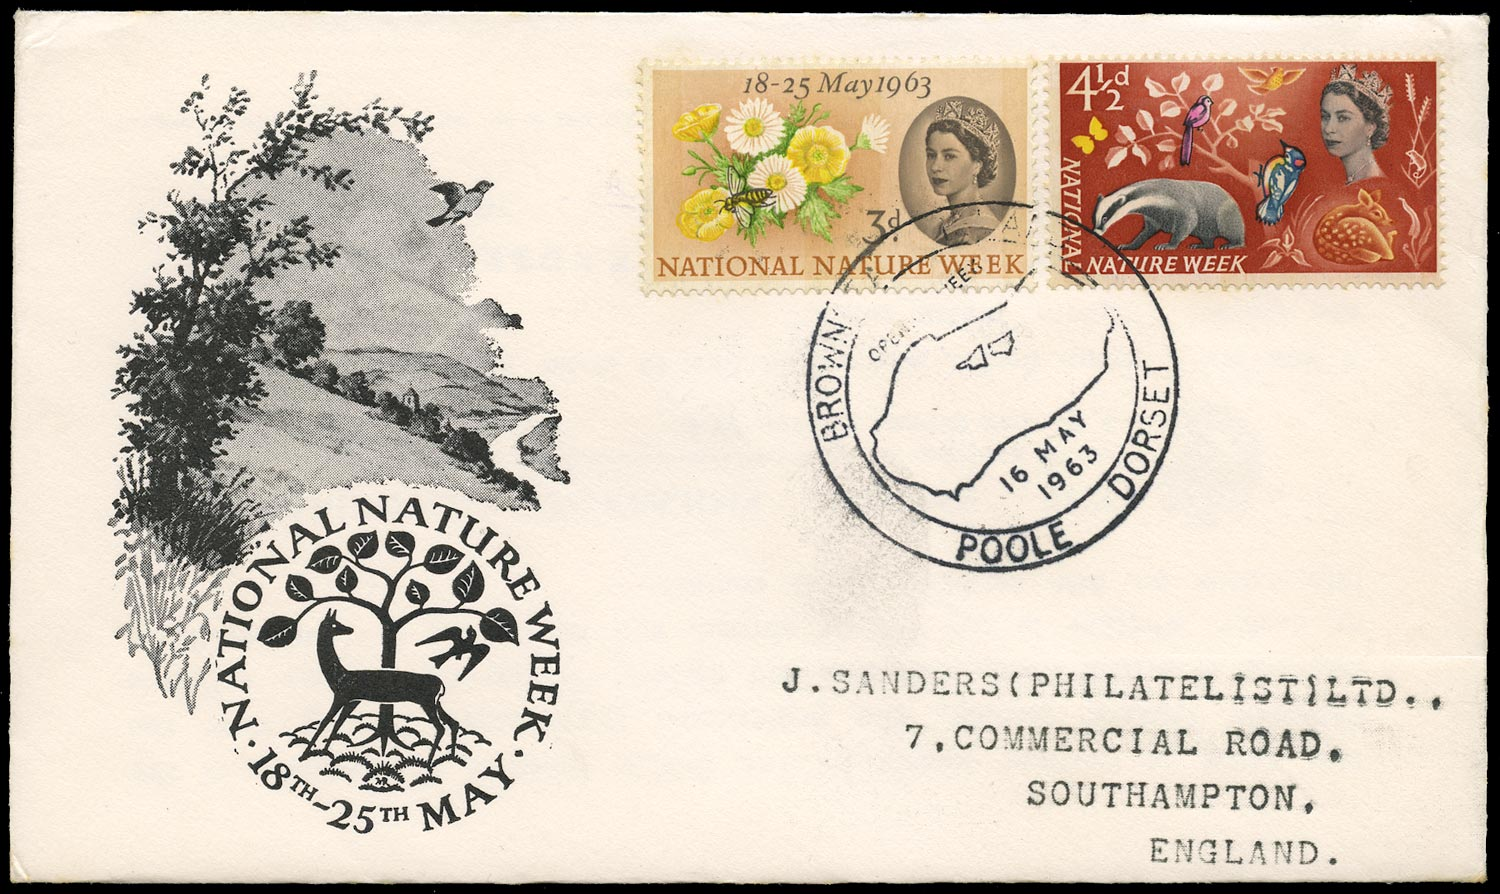 GB 1963  SG637/8p Cover National nature week FDC